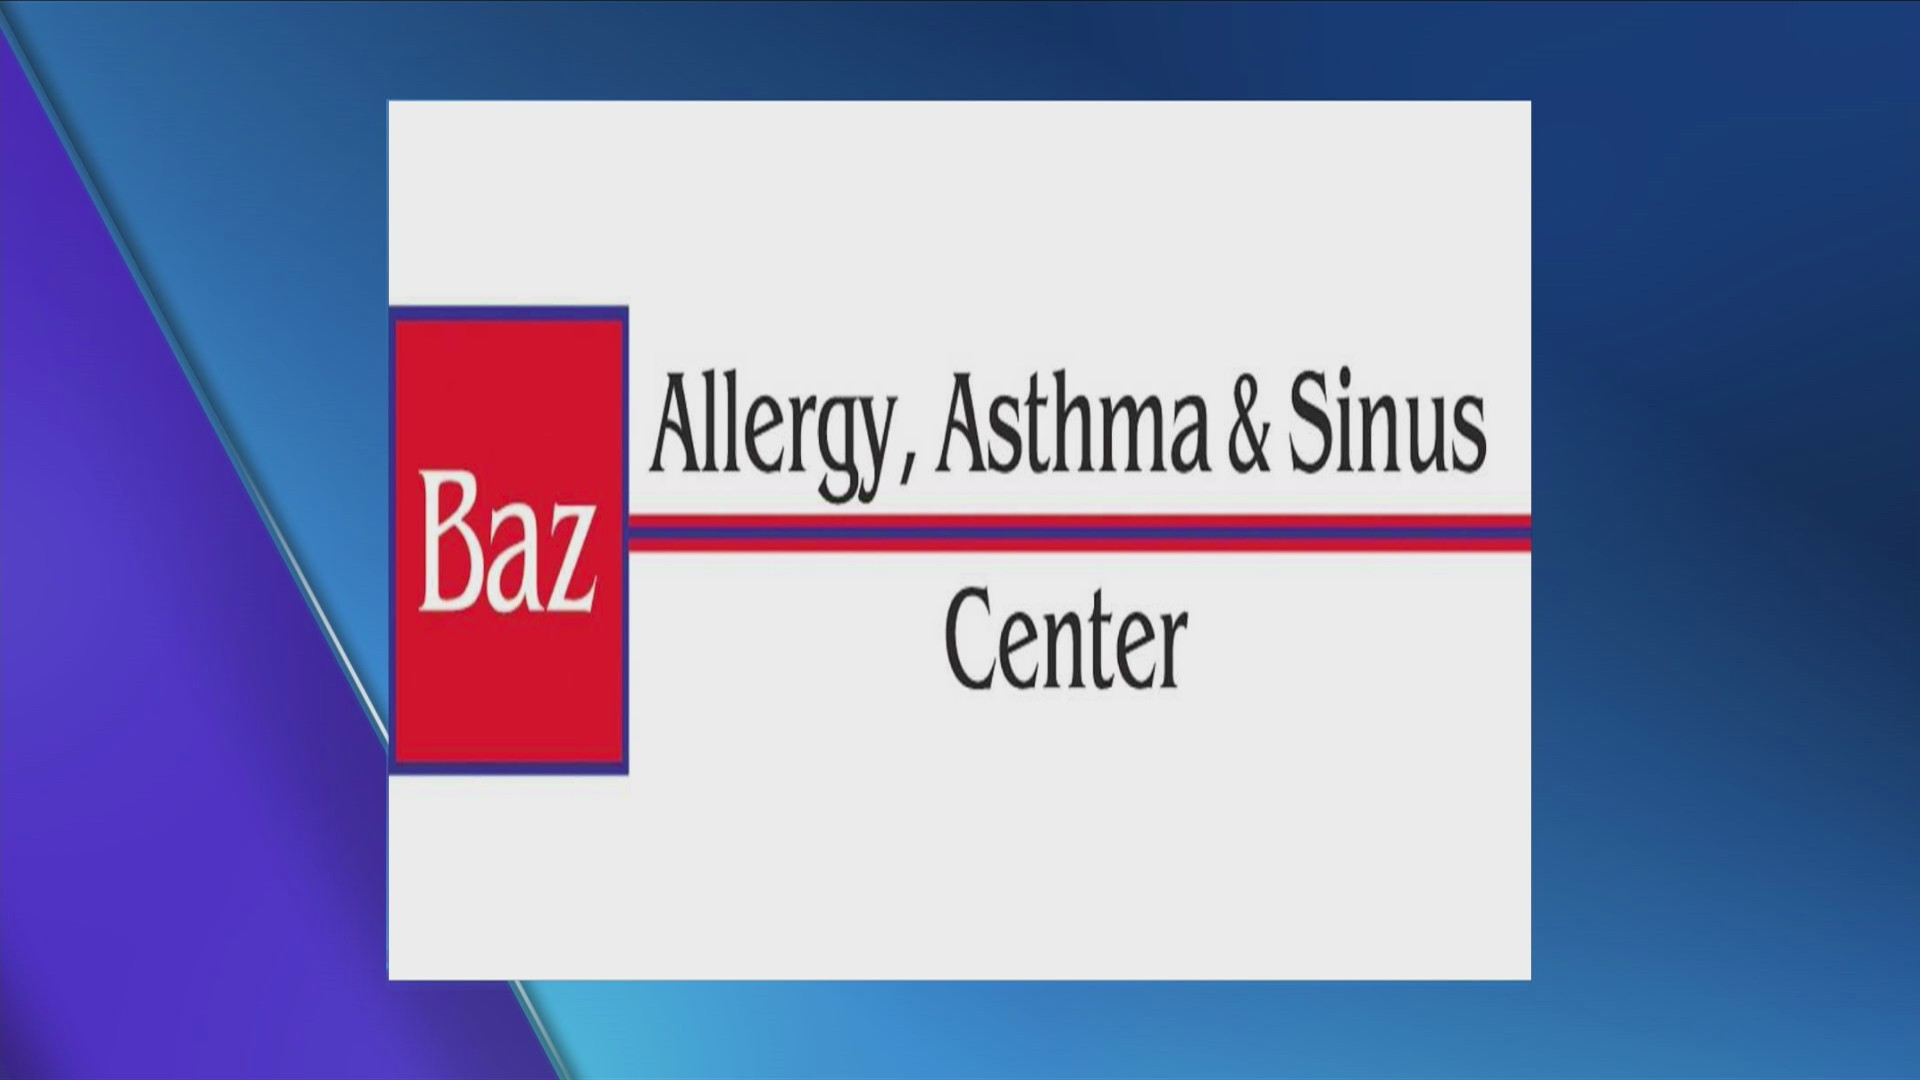 Baz_Allergy__Asthma___Sinus_Center_0_20190411225725